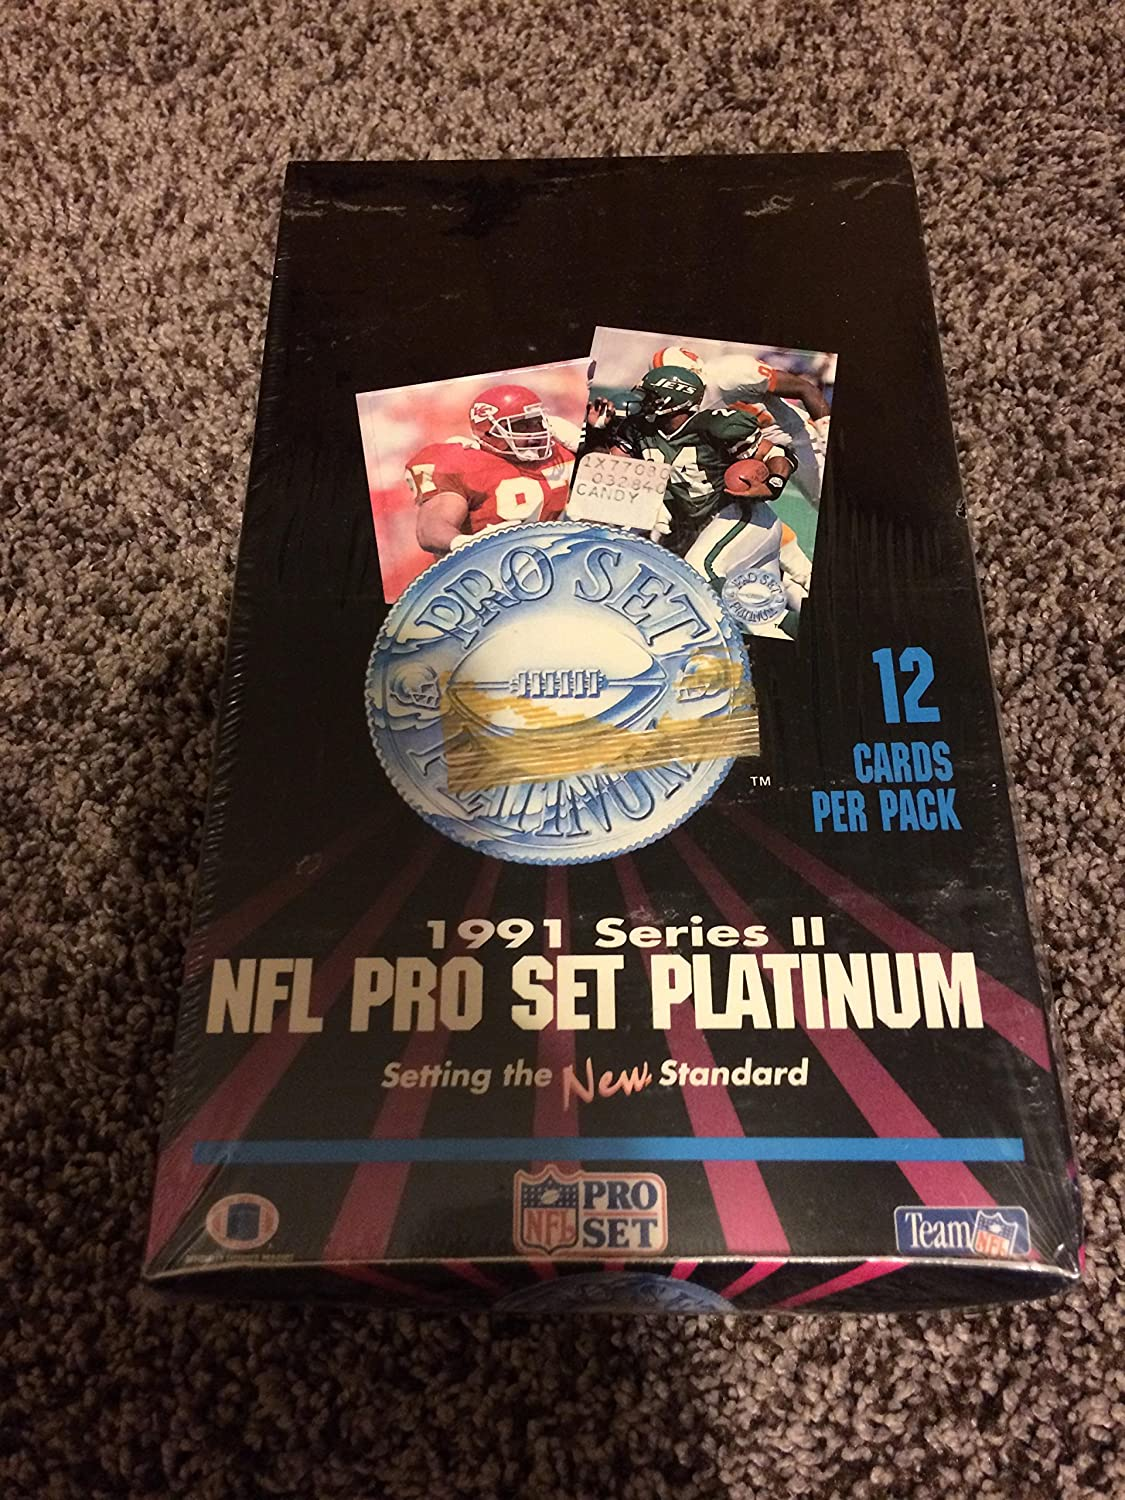 1991 Series II NFL Pro Set Platinum Sealed Box (36 packs of 12 cards)